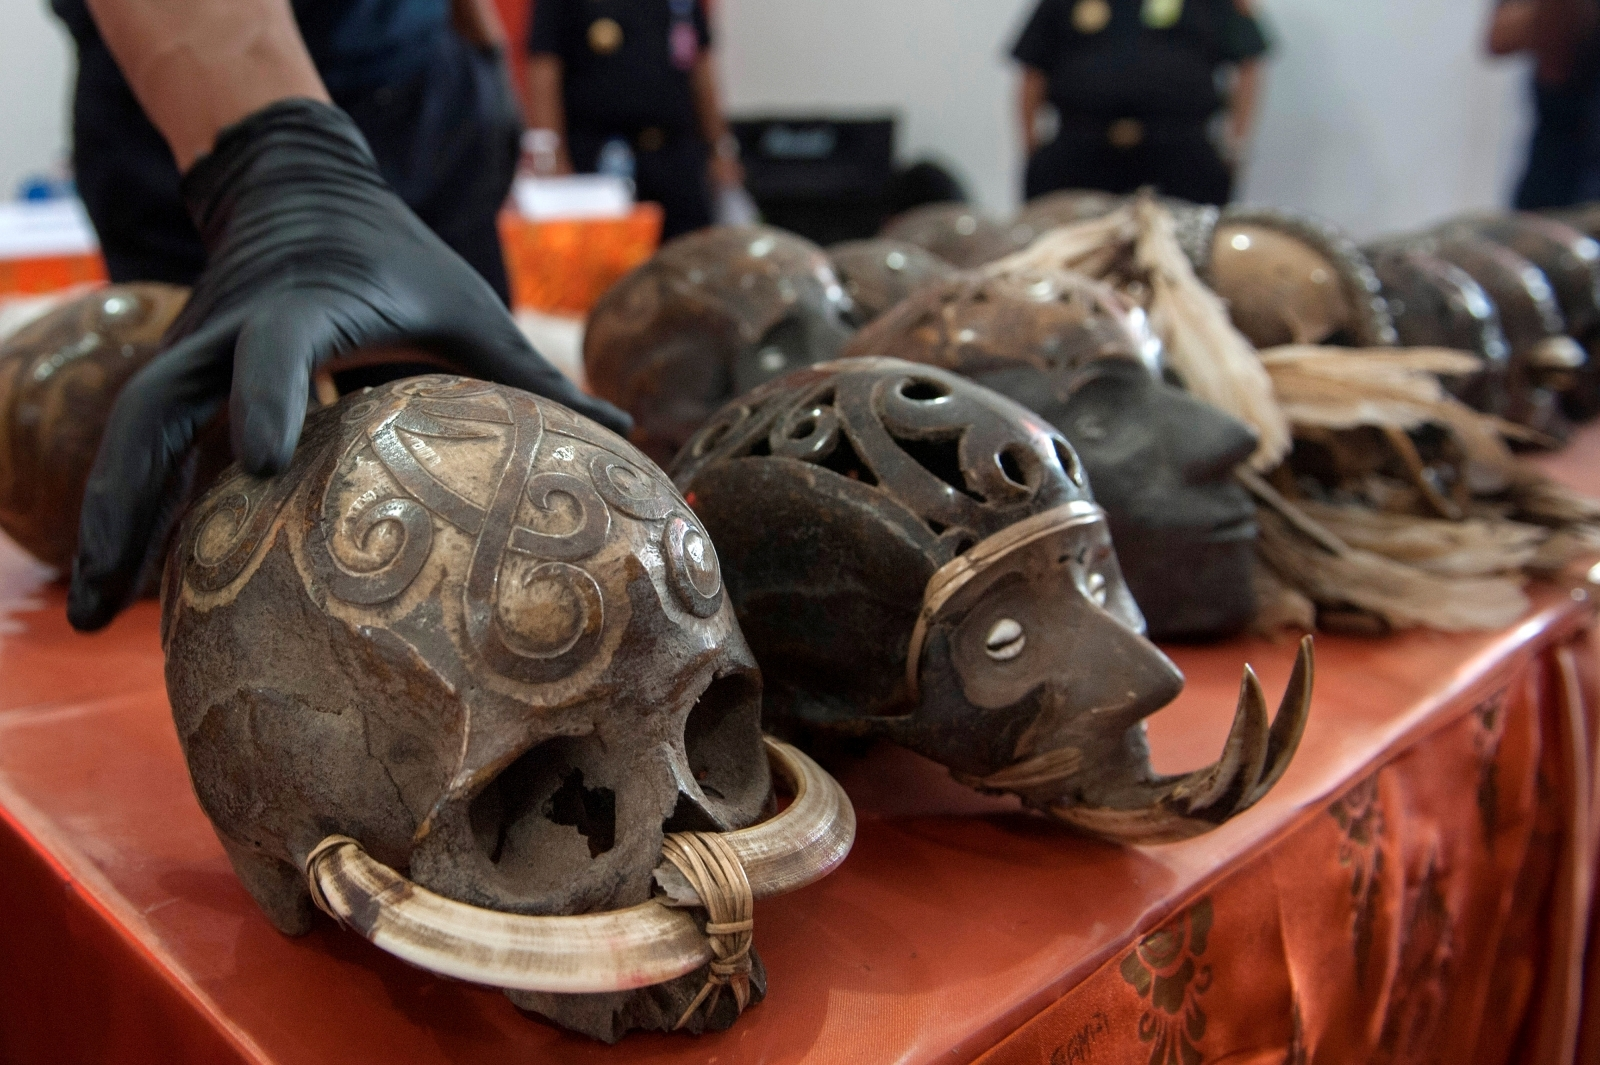 Customs officers in Bali find post 24 elaborately decorated human skulls that were being sent through the mail